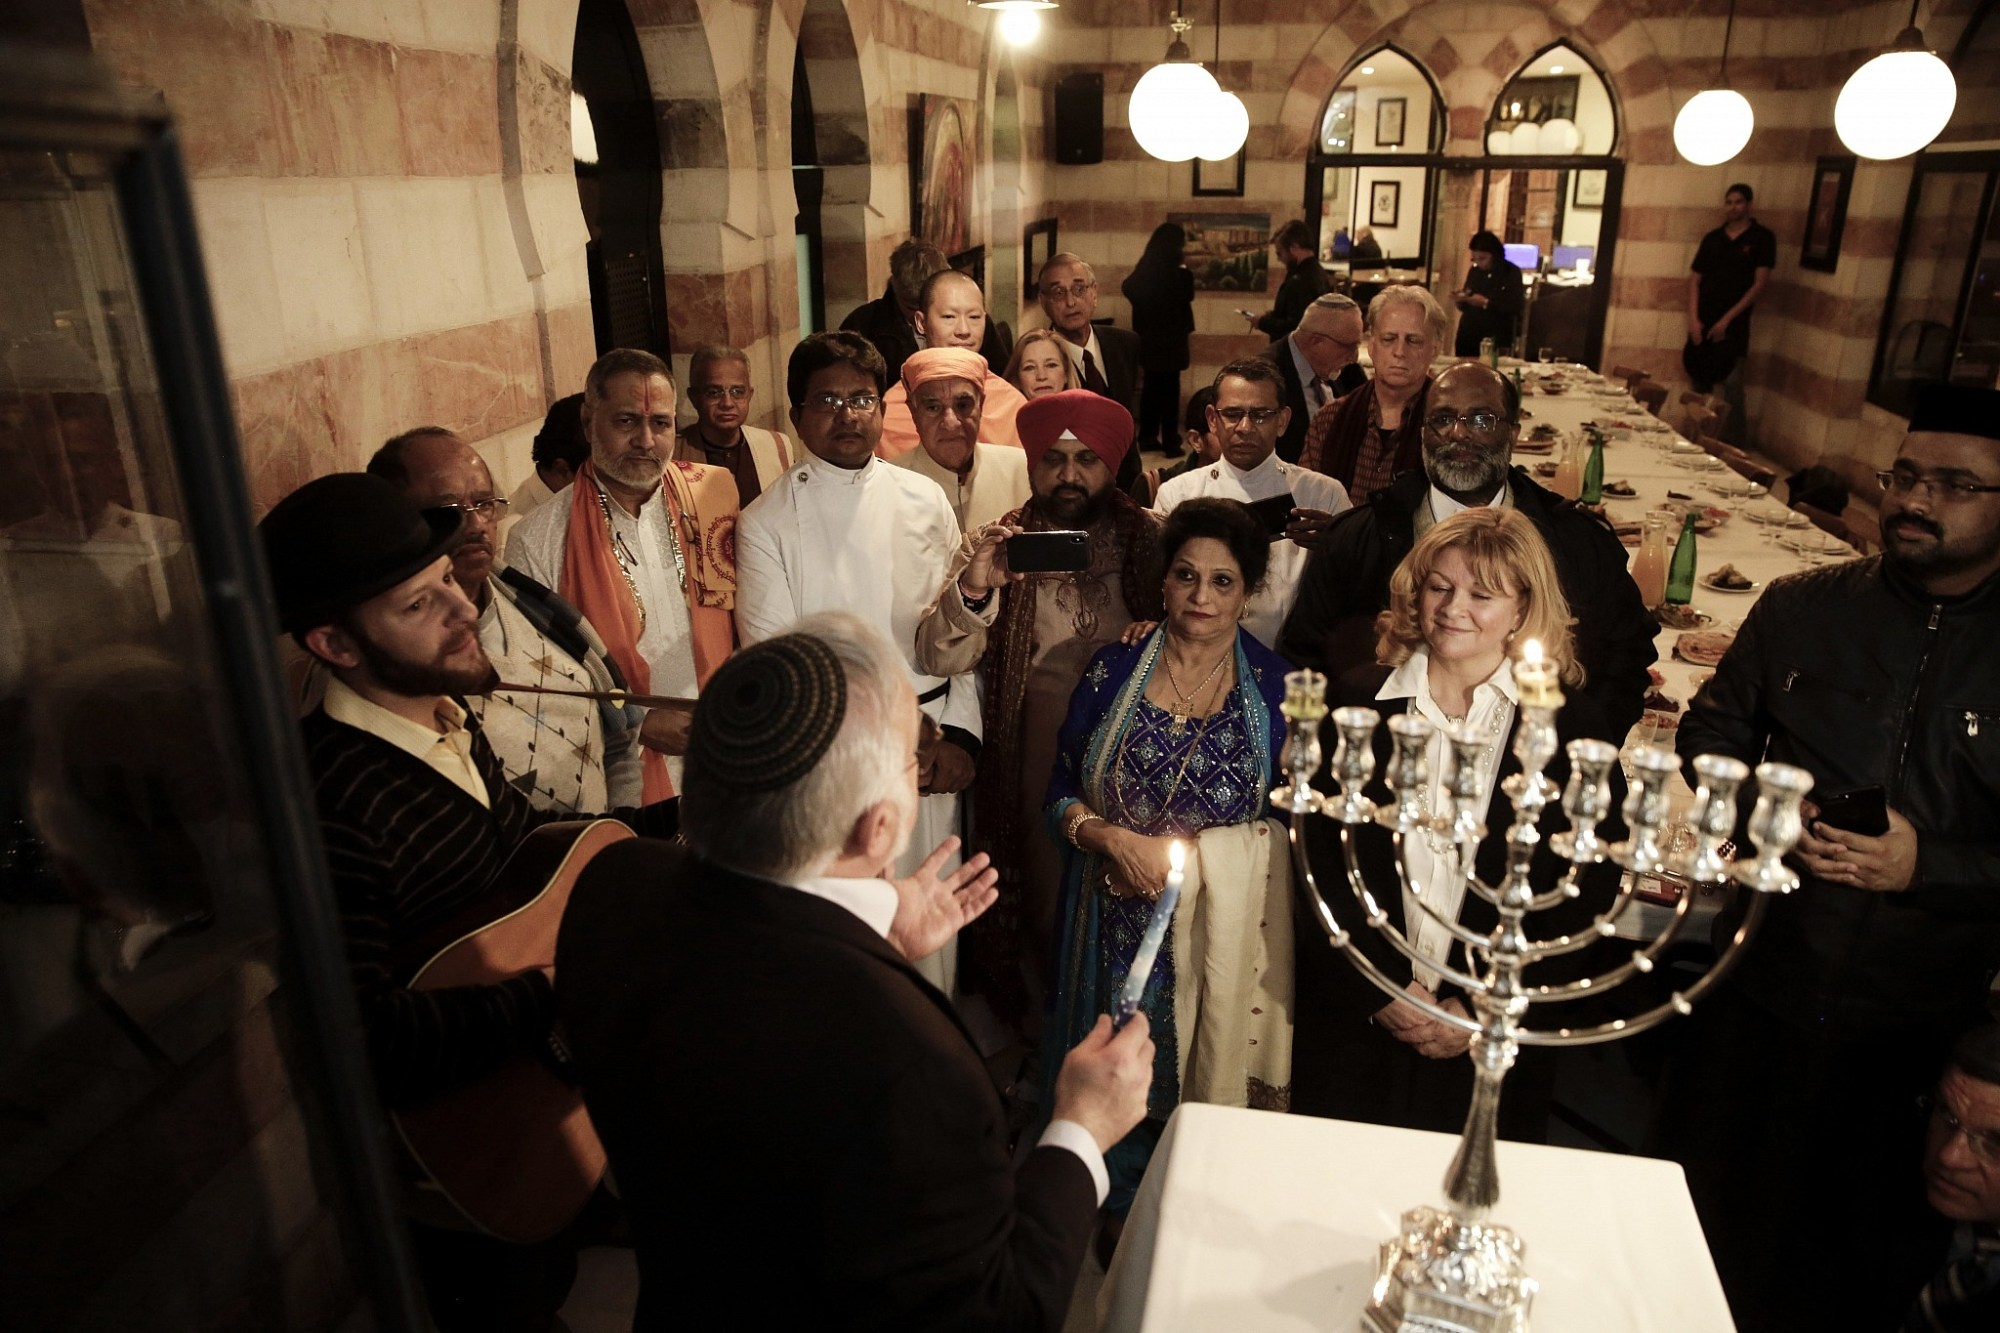 hight resolution of illustrative an interfaith group from the gulf state of bahrain attends hanukkah candle lighting in